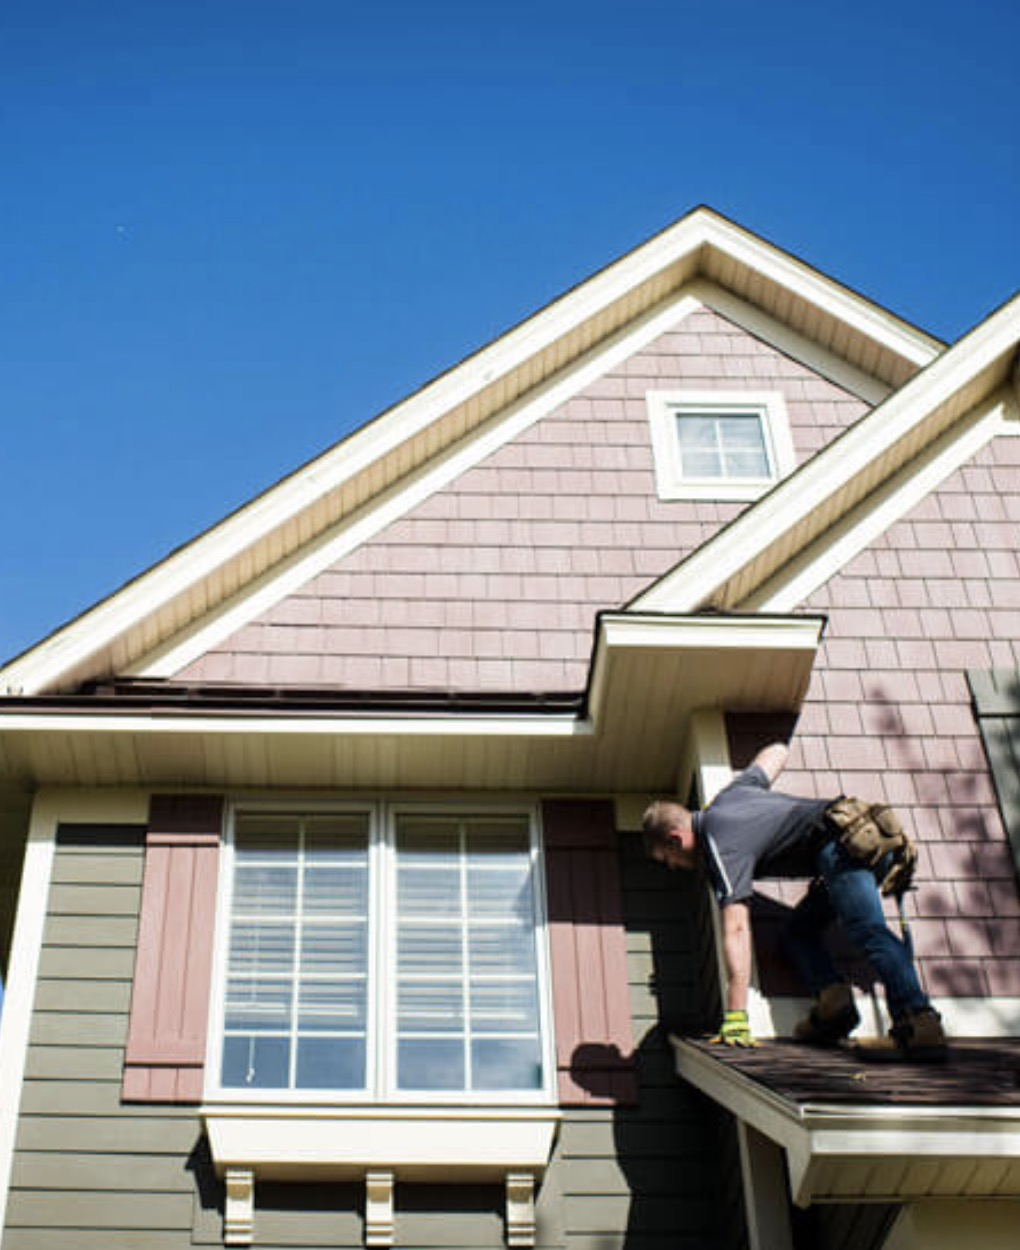 Roofer working on roof looking down